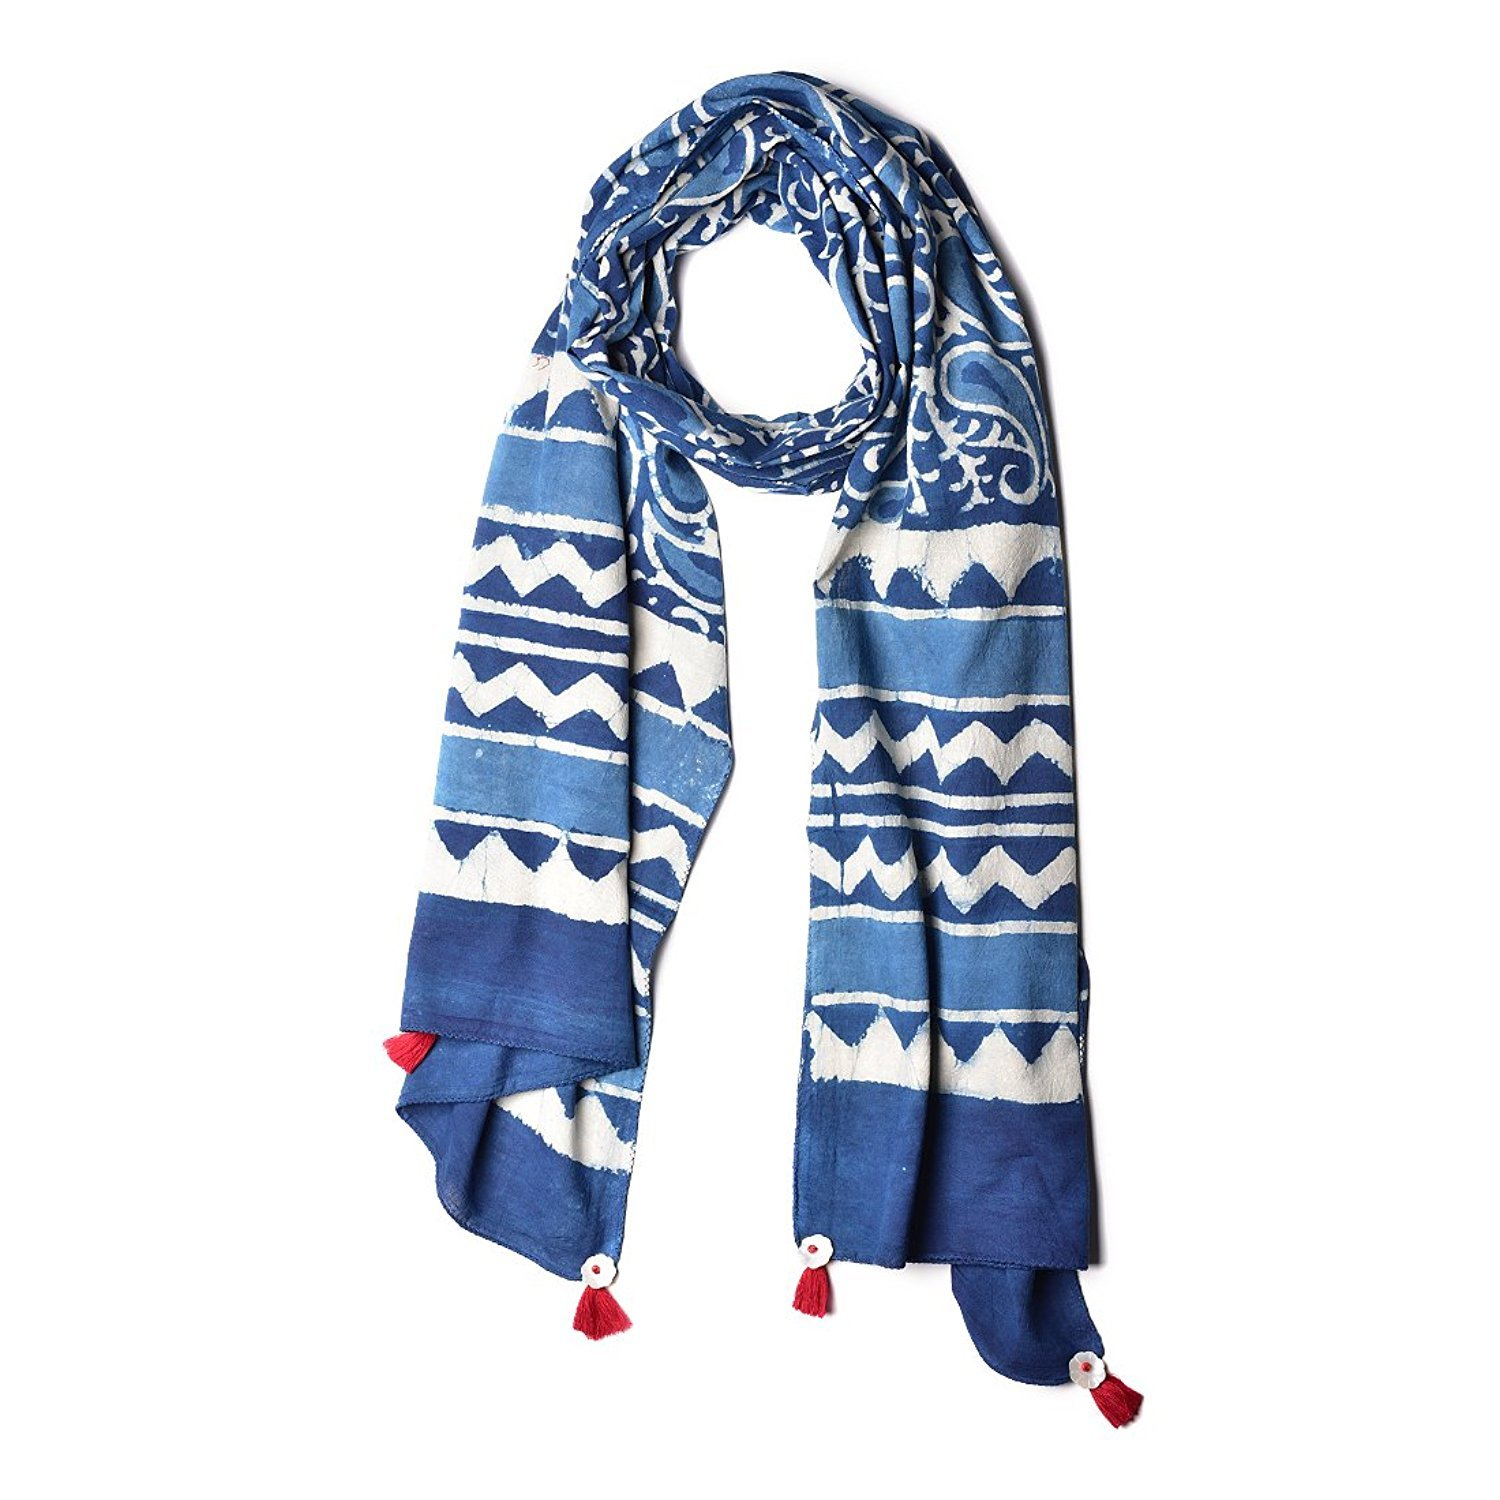 quality design 80ef0 18cb1 Uravi Women's Cotton Hand Block Printed Stole (Stole_3, Natural Indigo and  White)